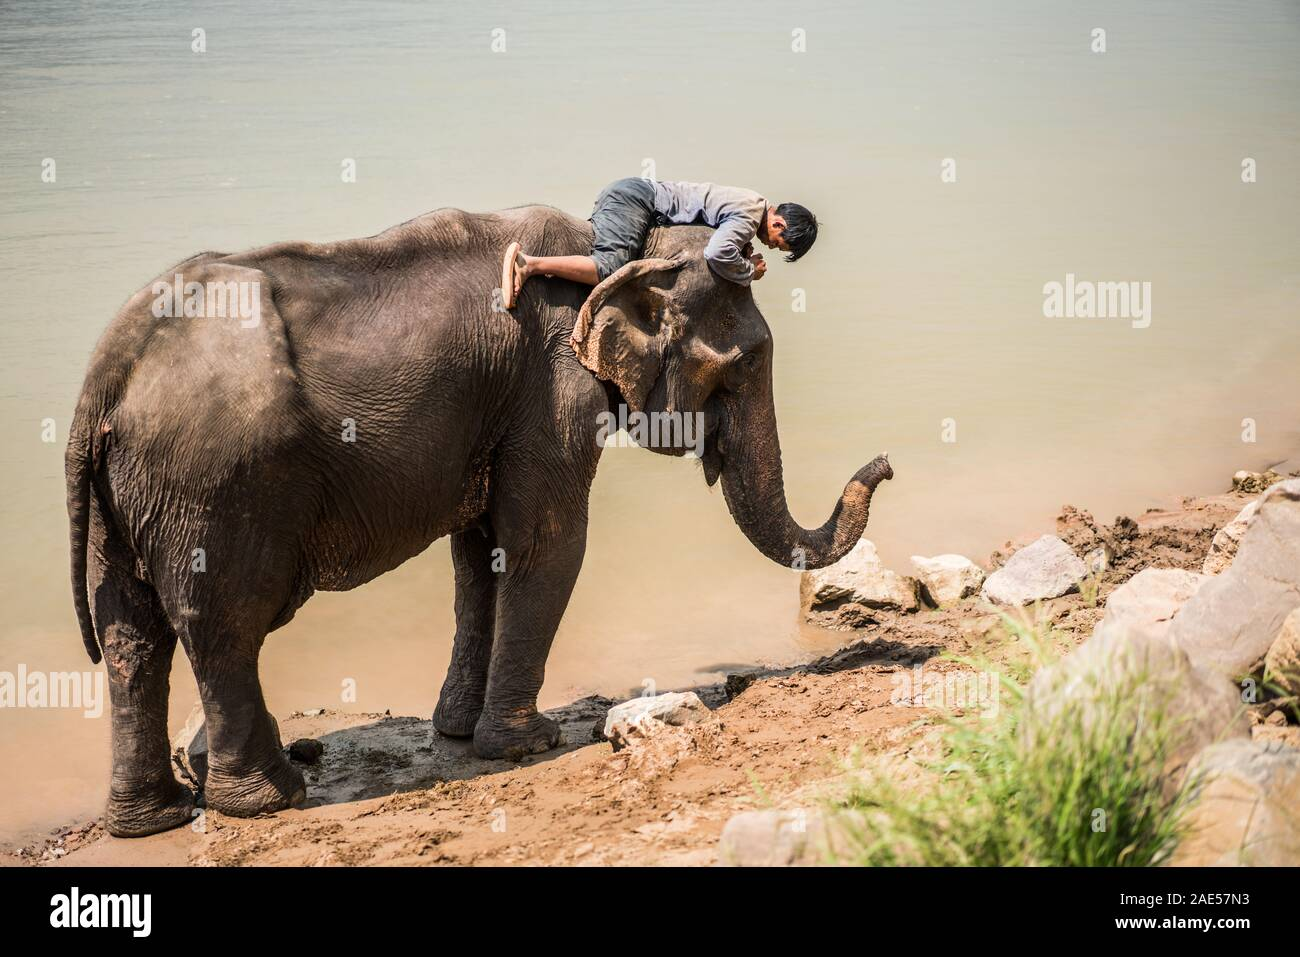 Bath with elephants, Luang Prabang Elephants Camp, Luang Prabang, Laos, Asia. Stock Photo